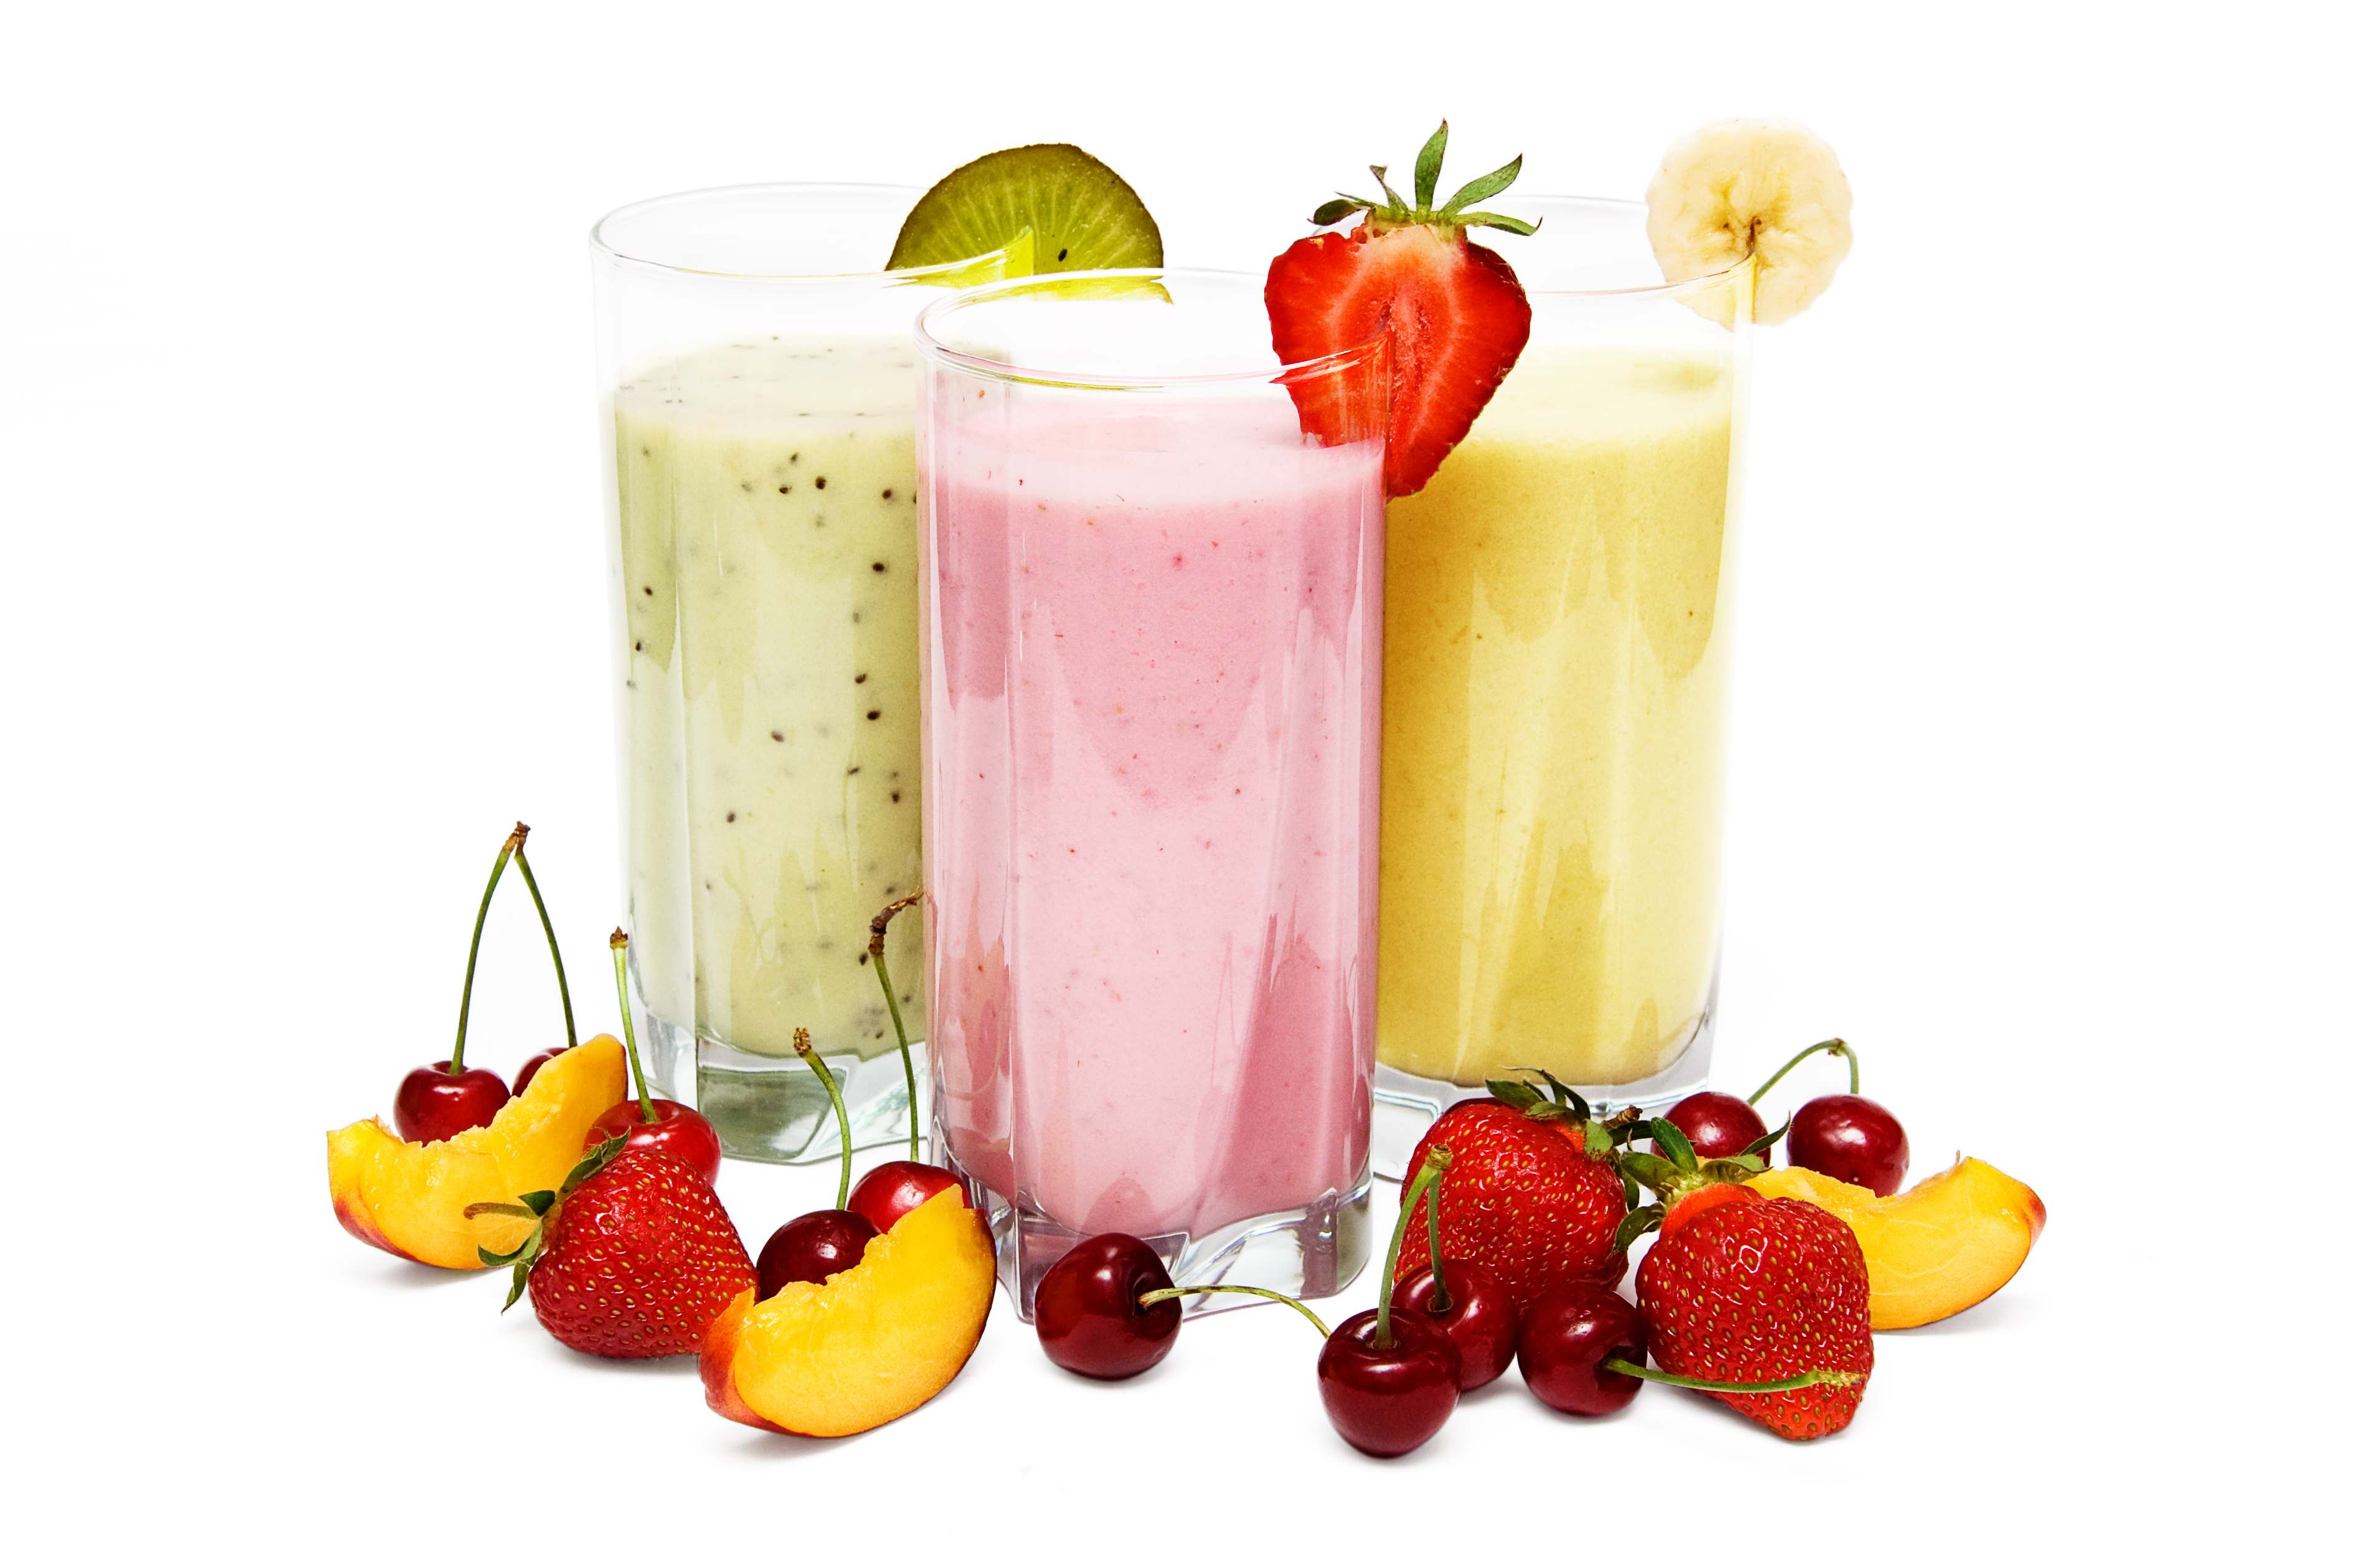 Protein shake pencil and. Blender clipart fruit smoothie